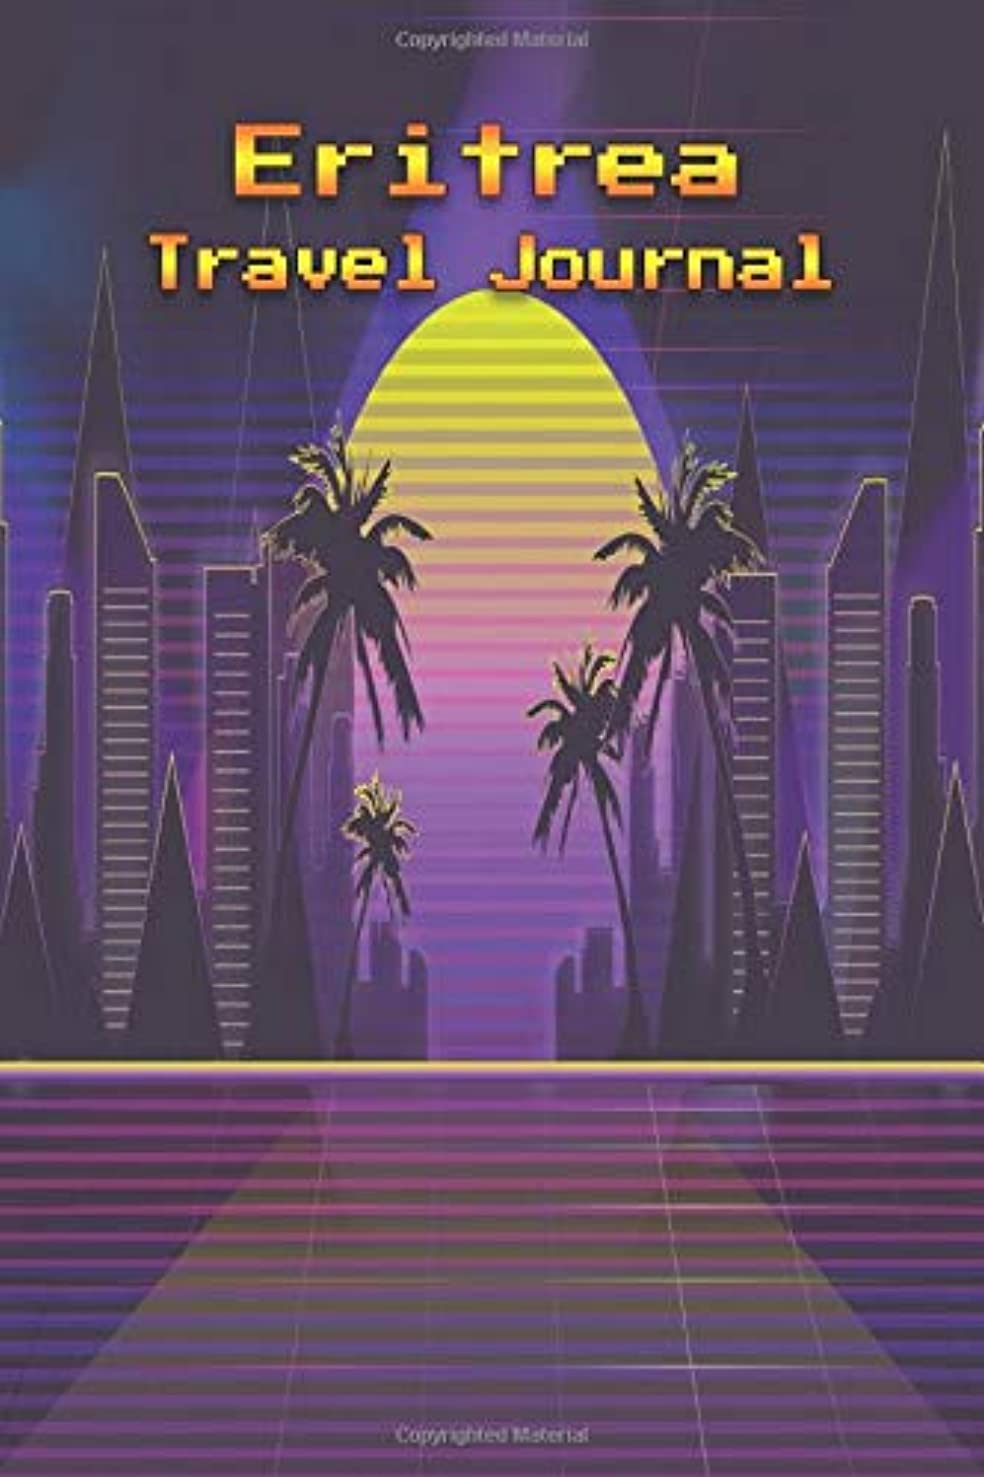 Eritrea Travel Journal: Travelers Diary Blank Lined Paper 6X9 Composition Notebook